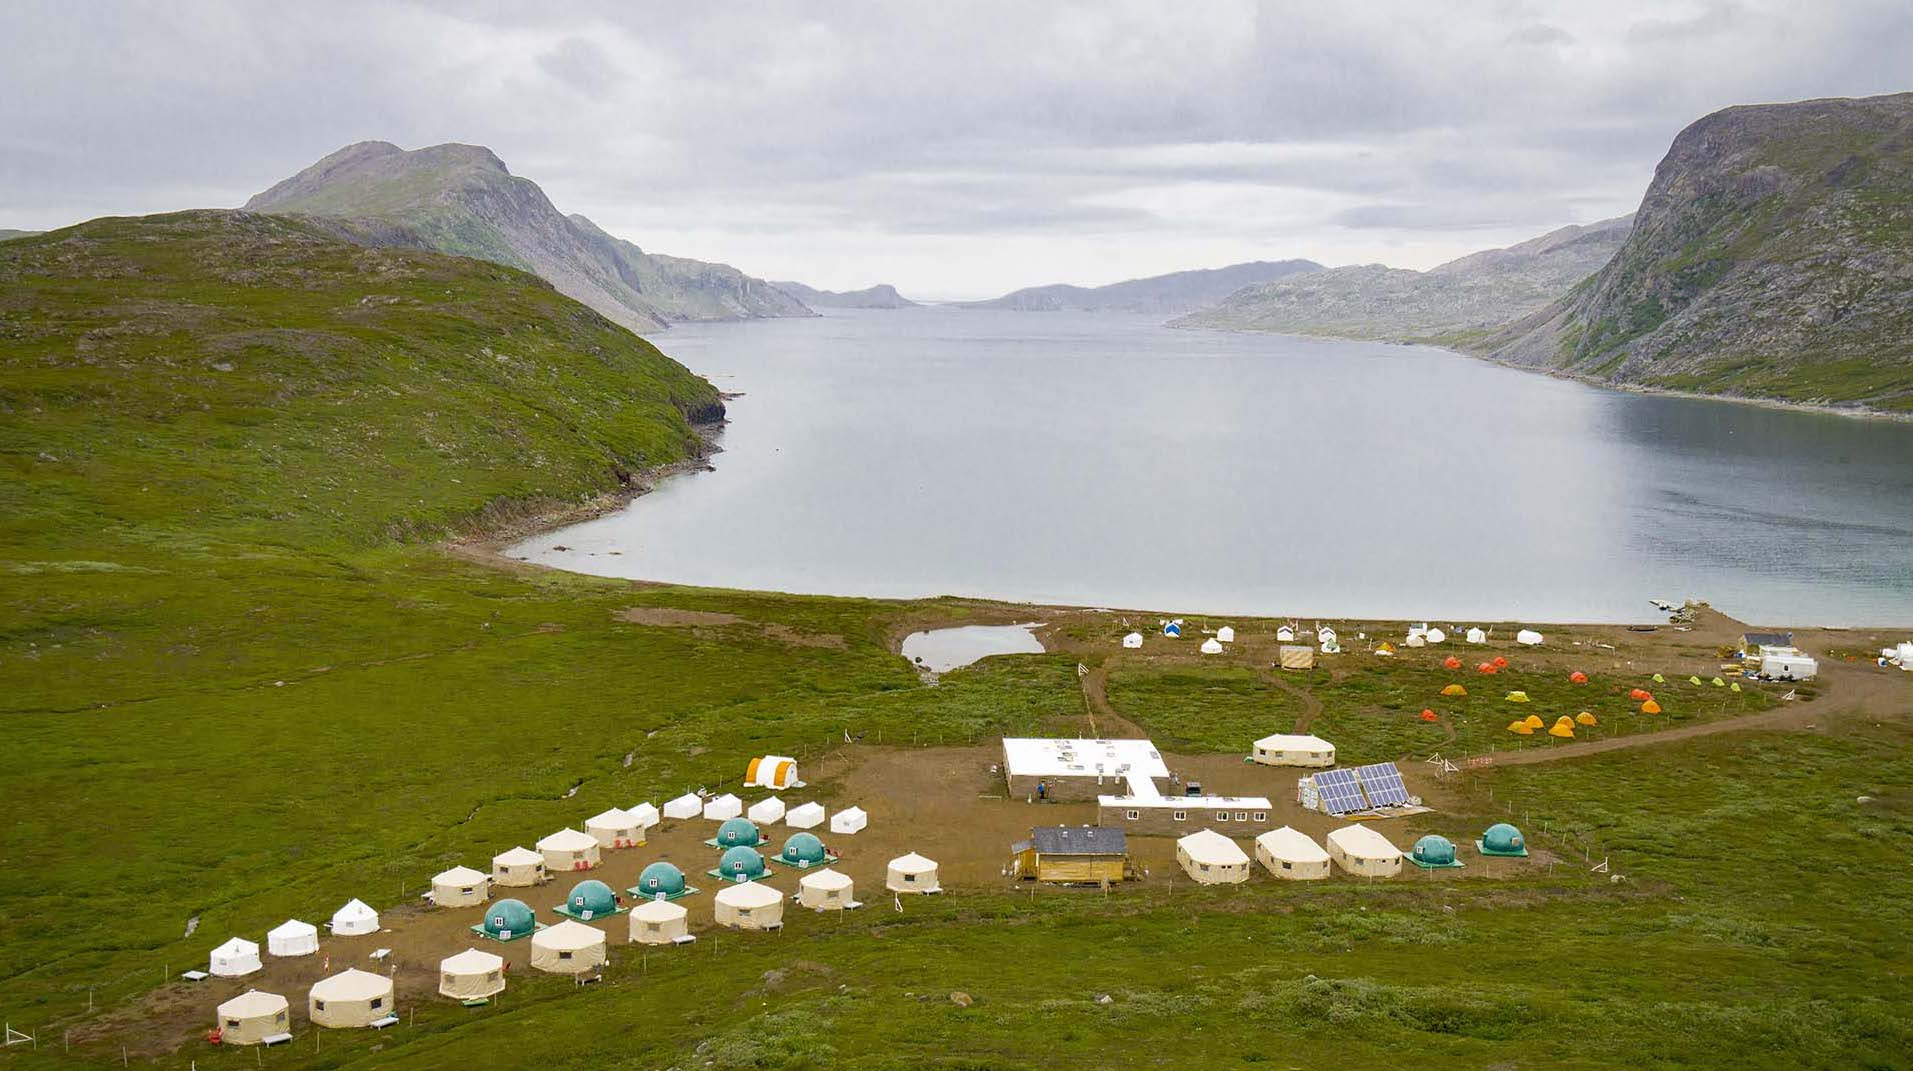 05 Apr Glamping In Newfoundland & Labrador In The Torngats